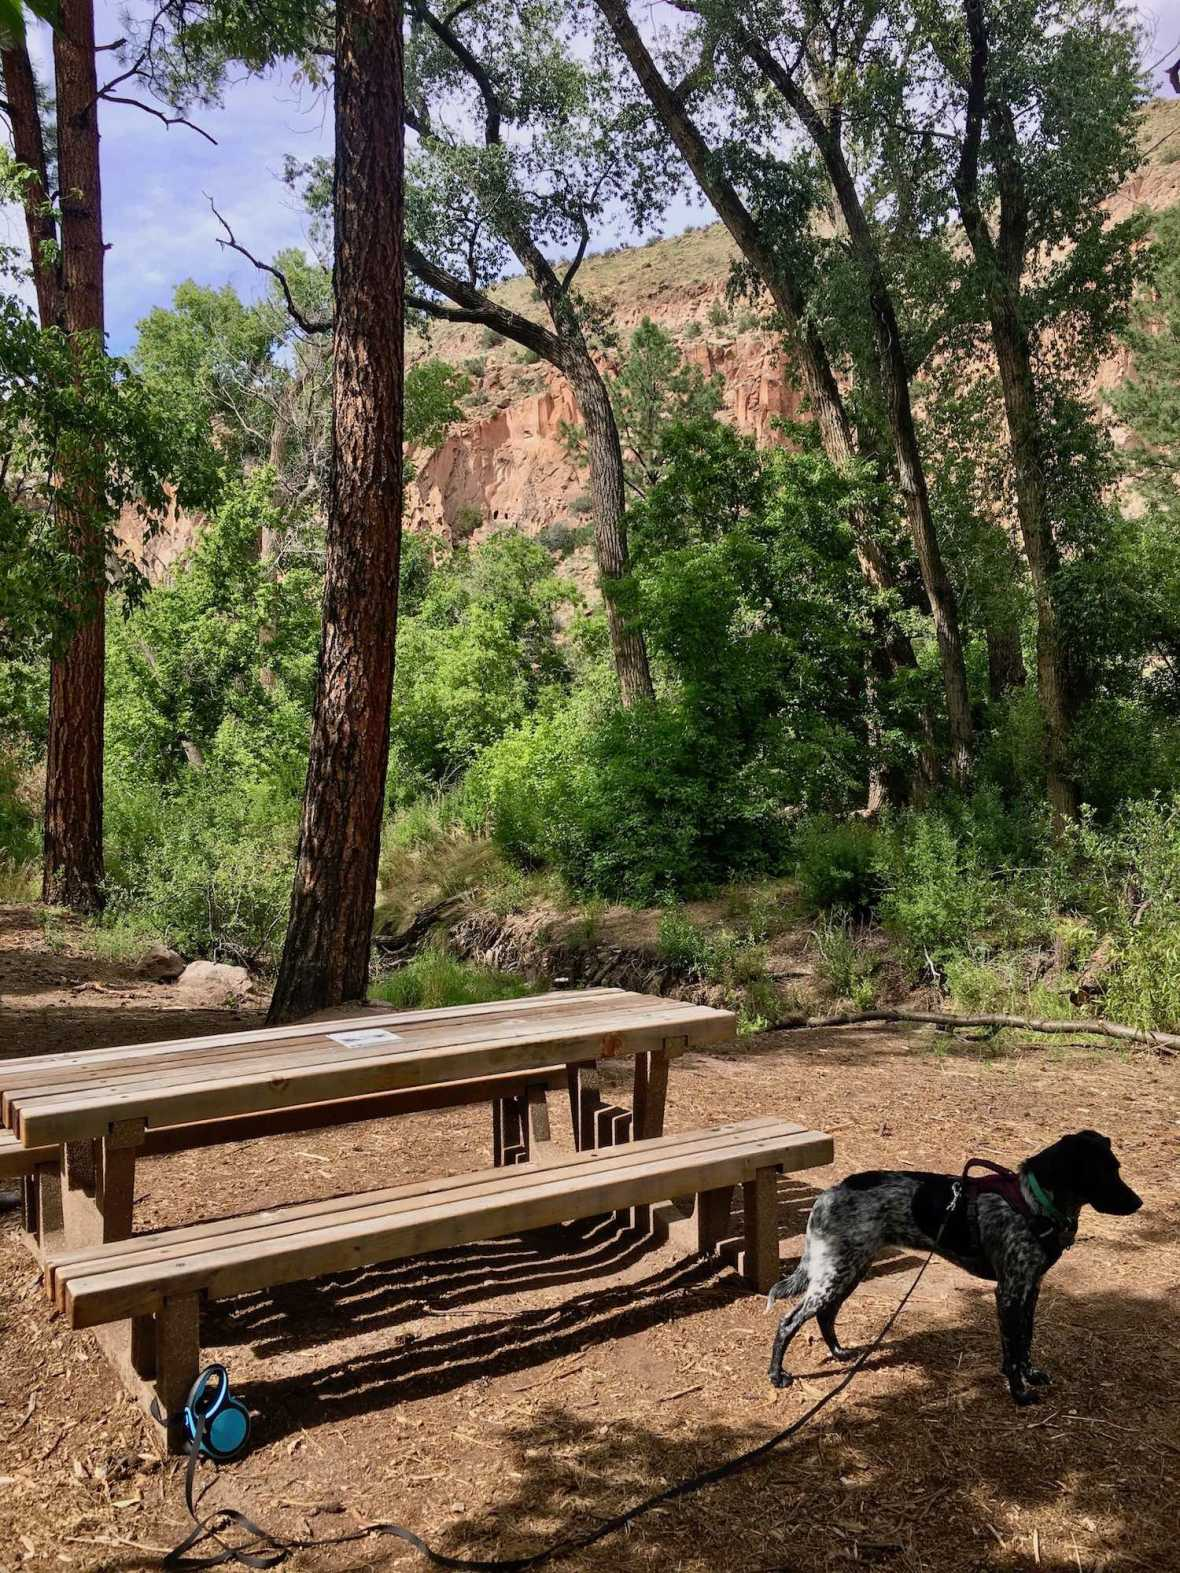 Juniper at dog-friendly Cottonwood picnic area in Bandelier National Monument